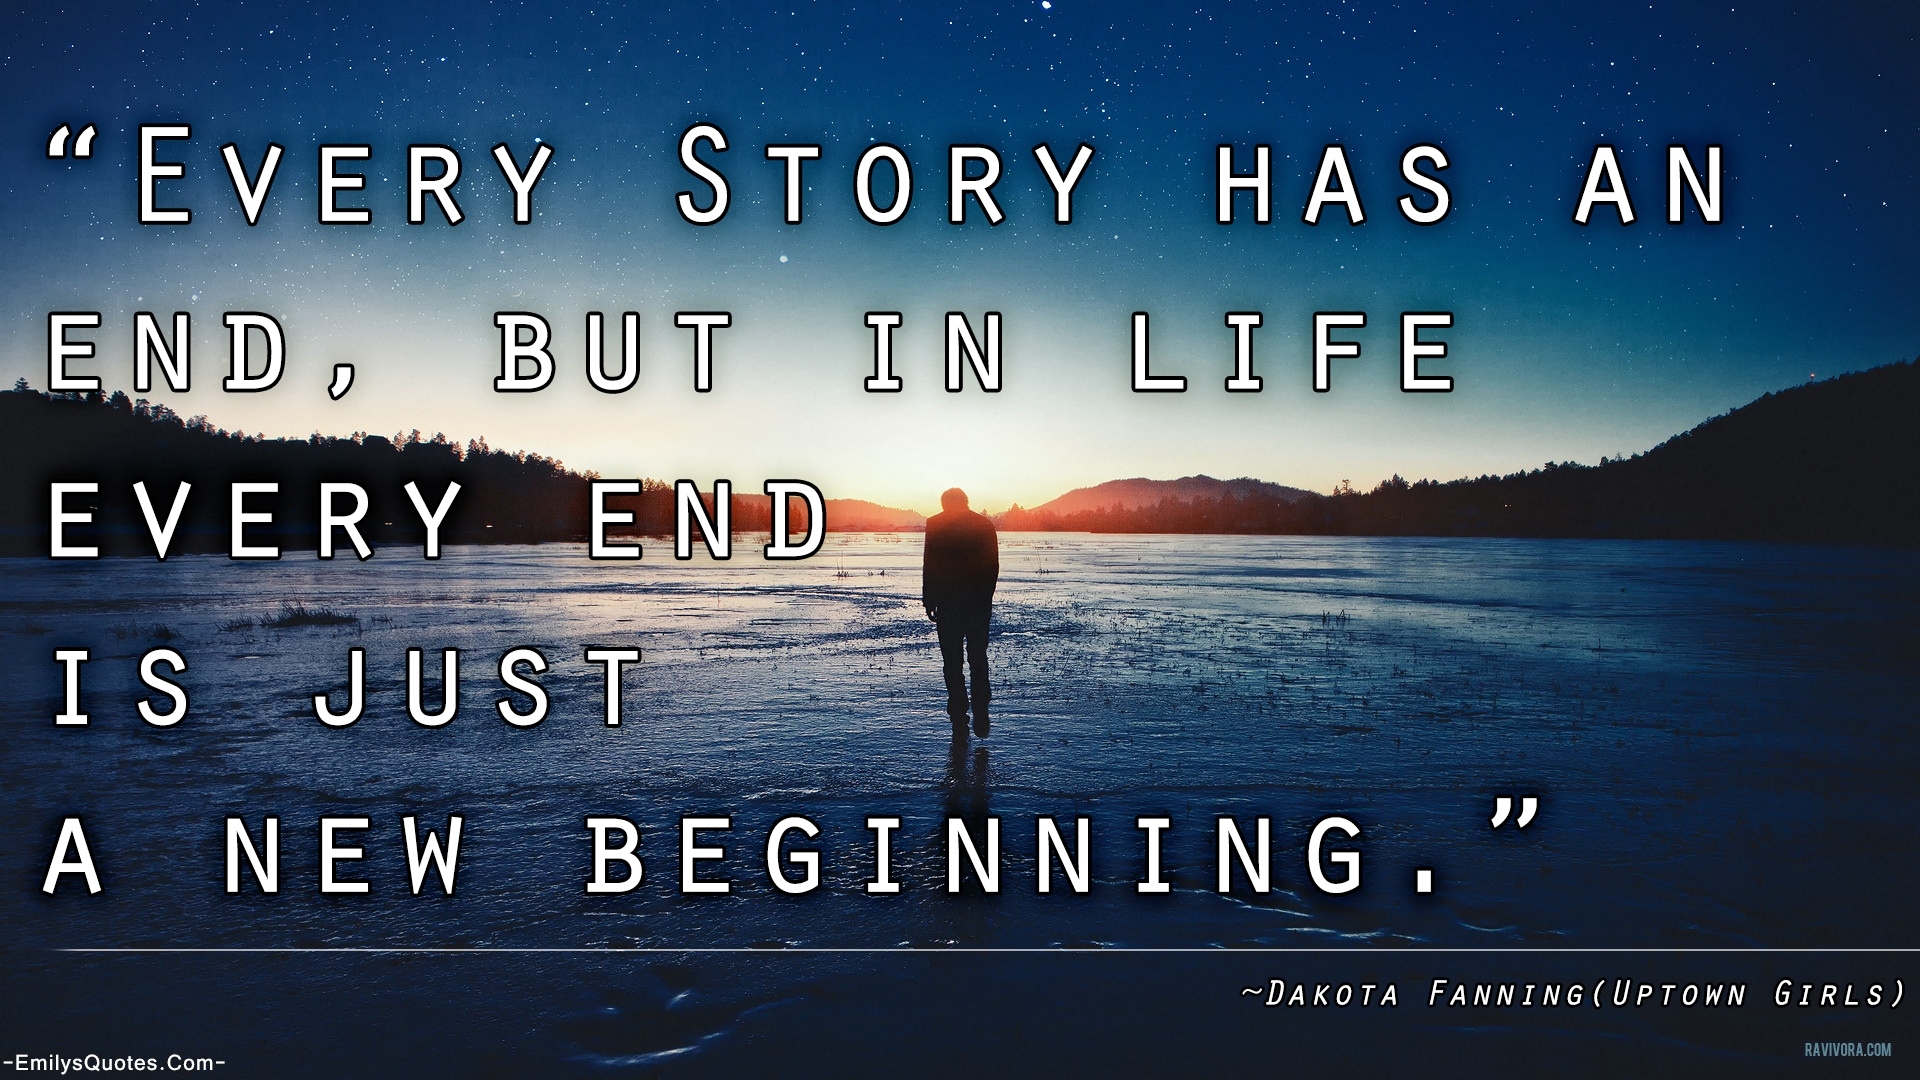 Quotes About New Life Every Story Has An End But In Life Every End Is Just A New